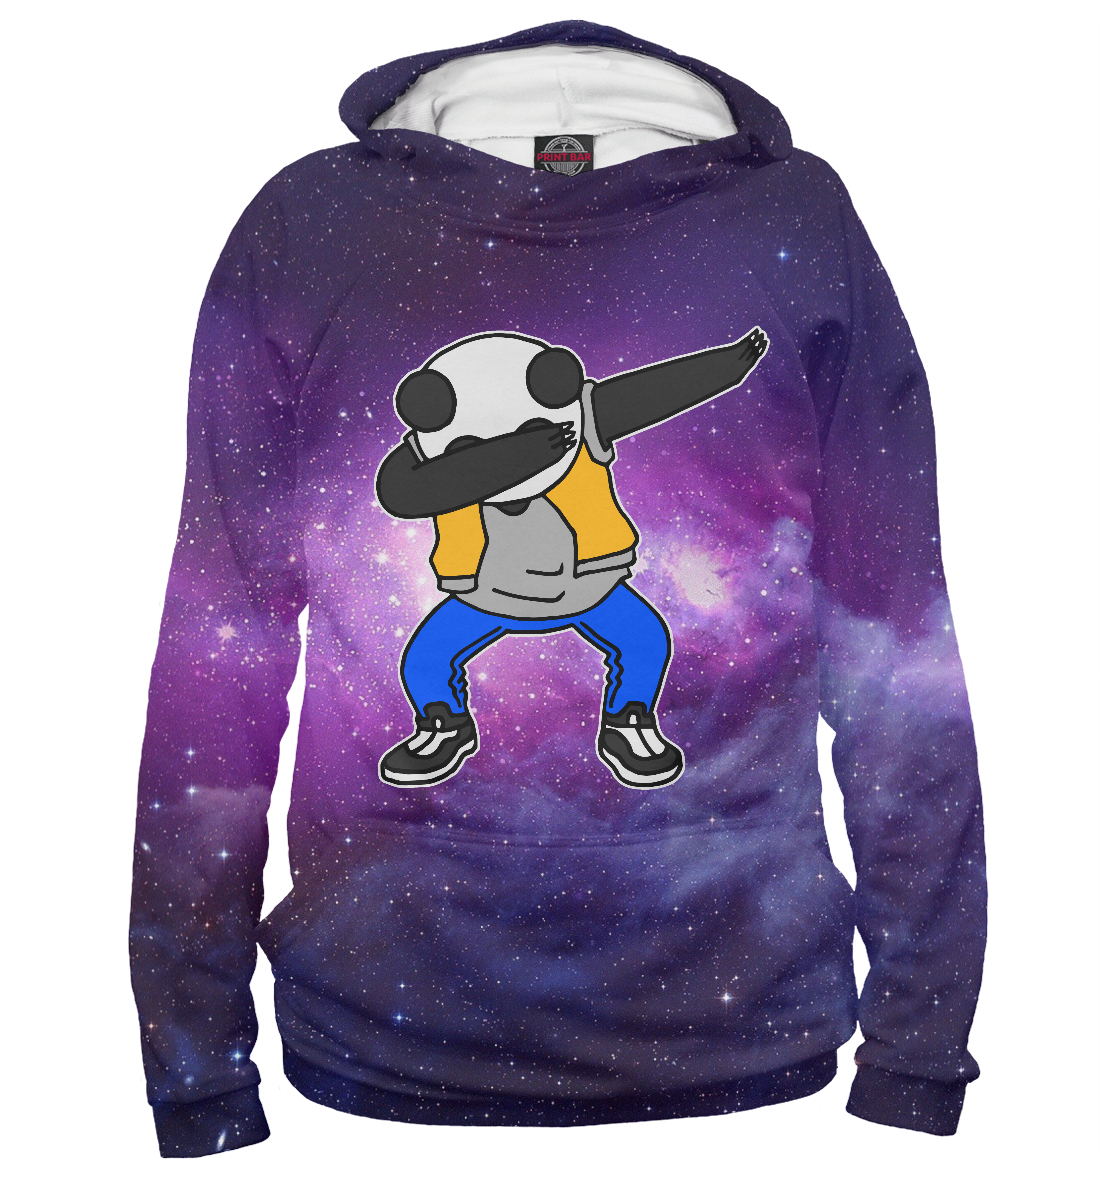 Купить Space Panda dab, Printbar, Худи, PAN-649680-hud-2